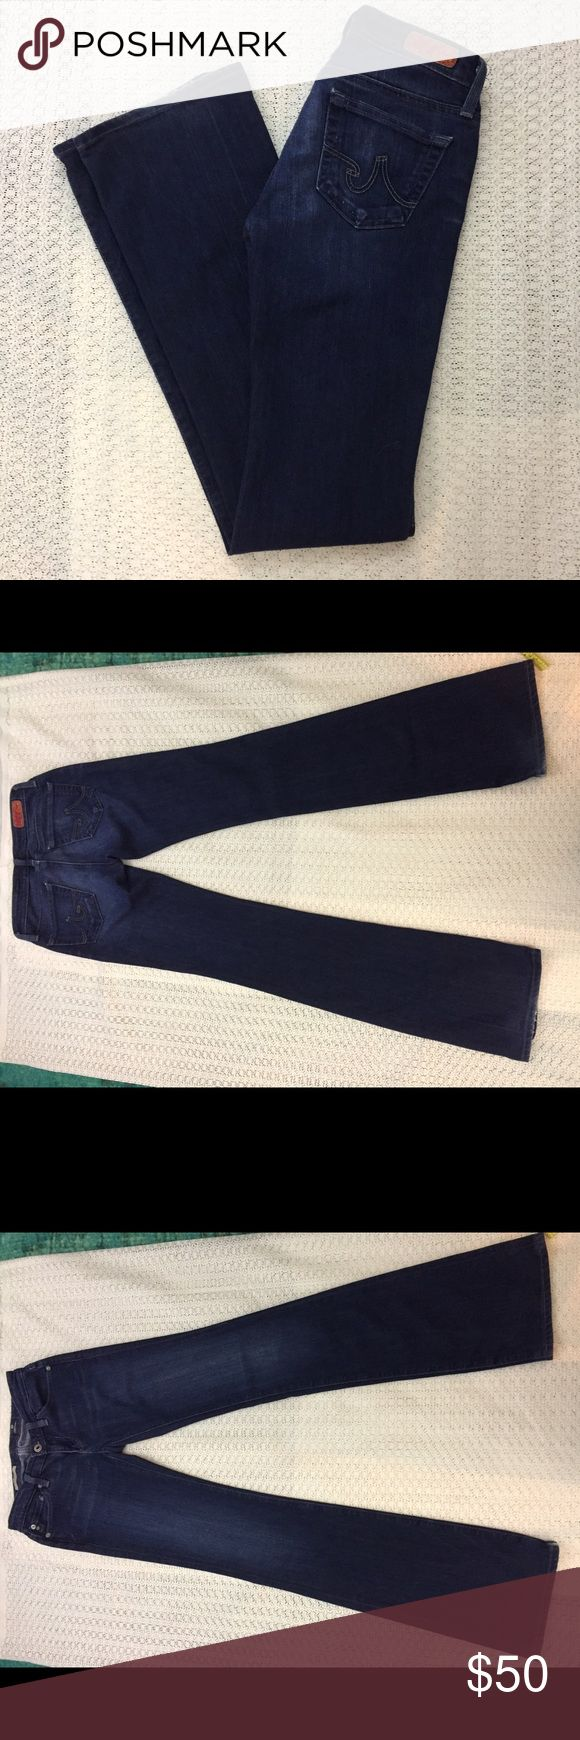 AG ADRIANO GOLDSCHMIED The Angel Bootcut Jeans AG jeans. The Angel style. Dark wash. Preowned, great condition. Minimal fraying at hem (probably came that way!) AG Adriano Goldschmied Jeans Boot Cut